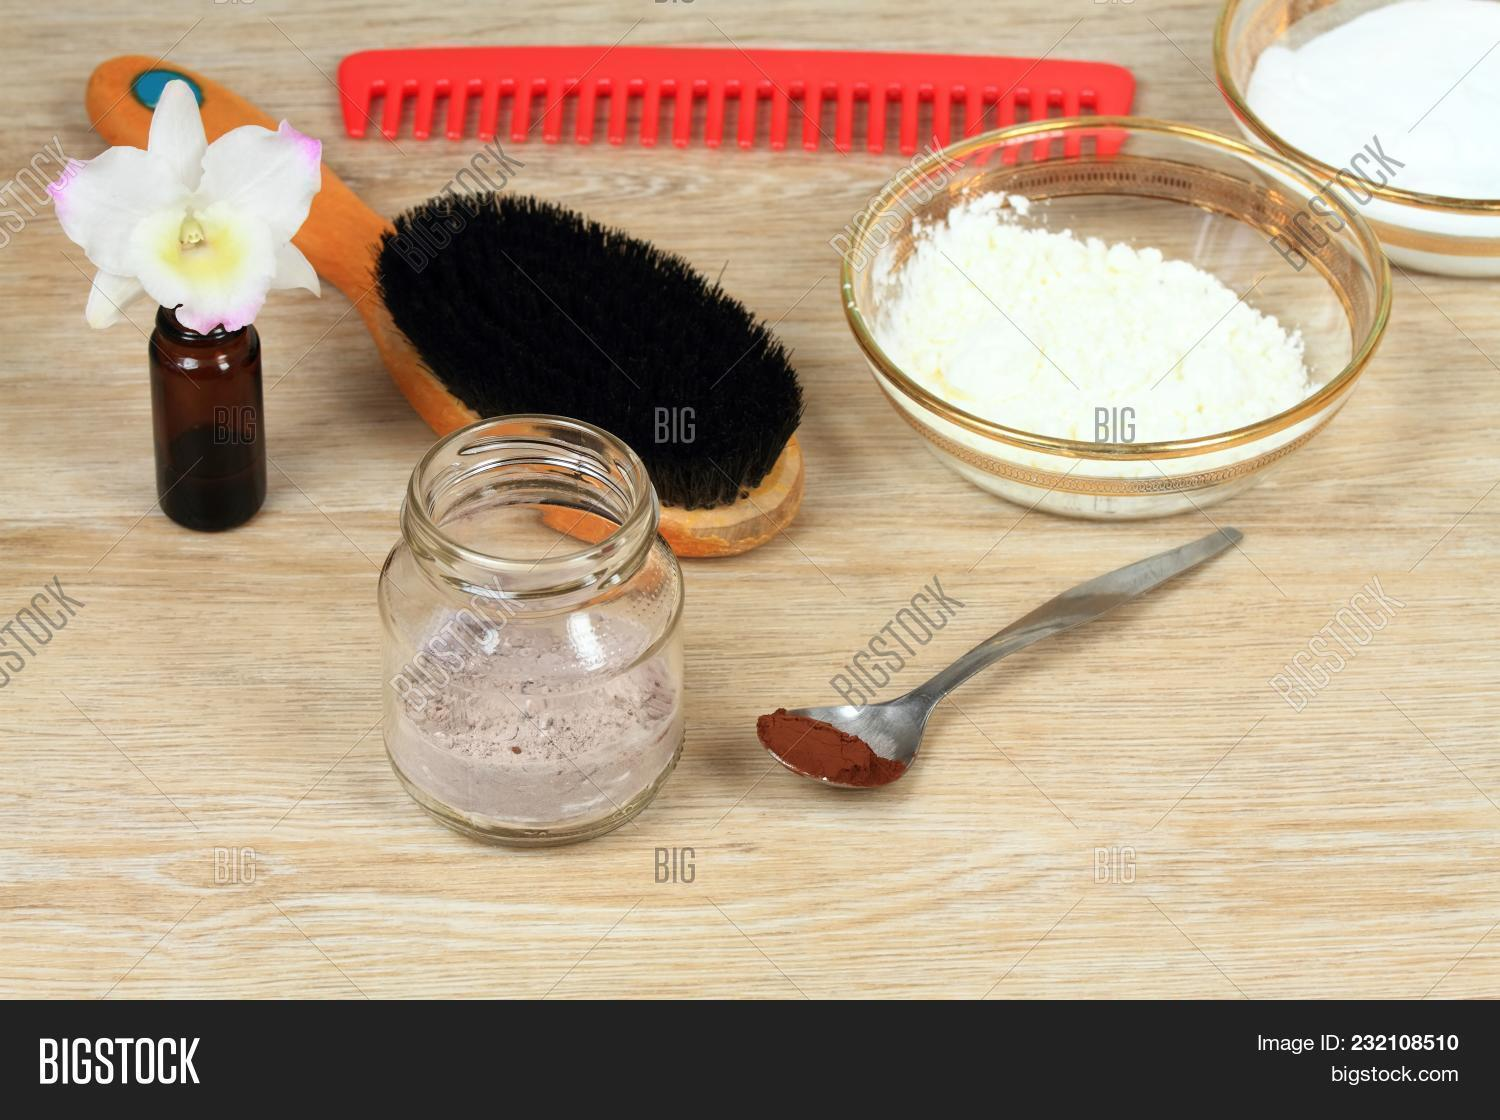 Homemade Dry Shampoo Image & Photo (Free Trial) | Bigstock